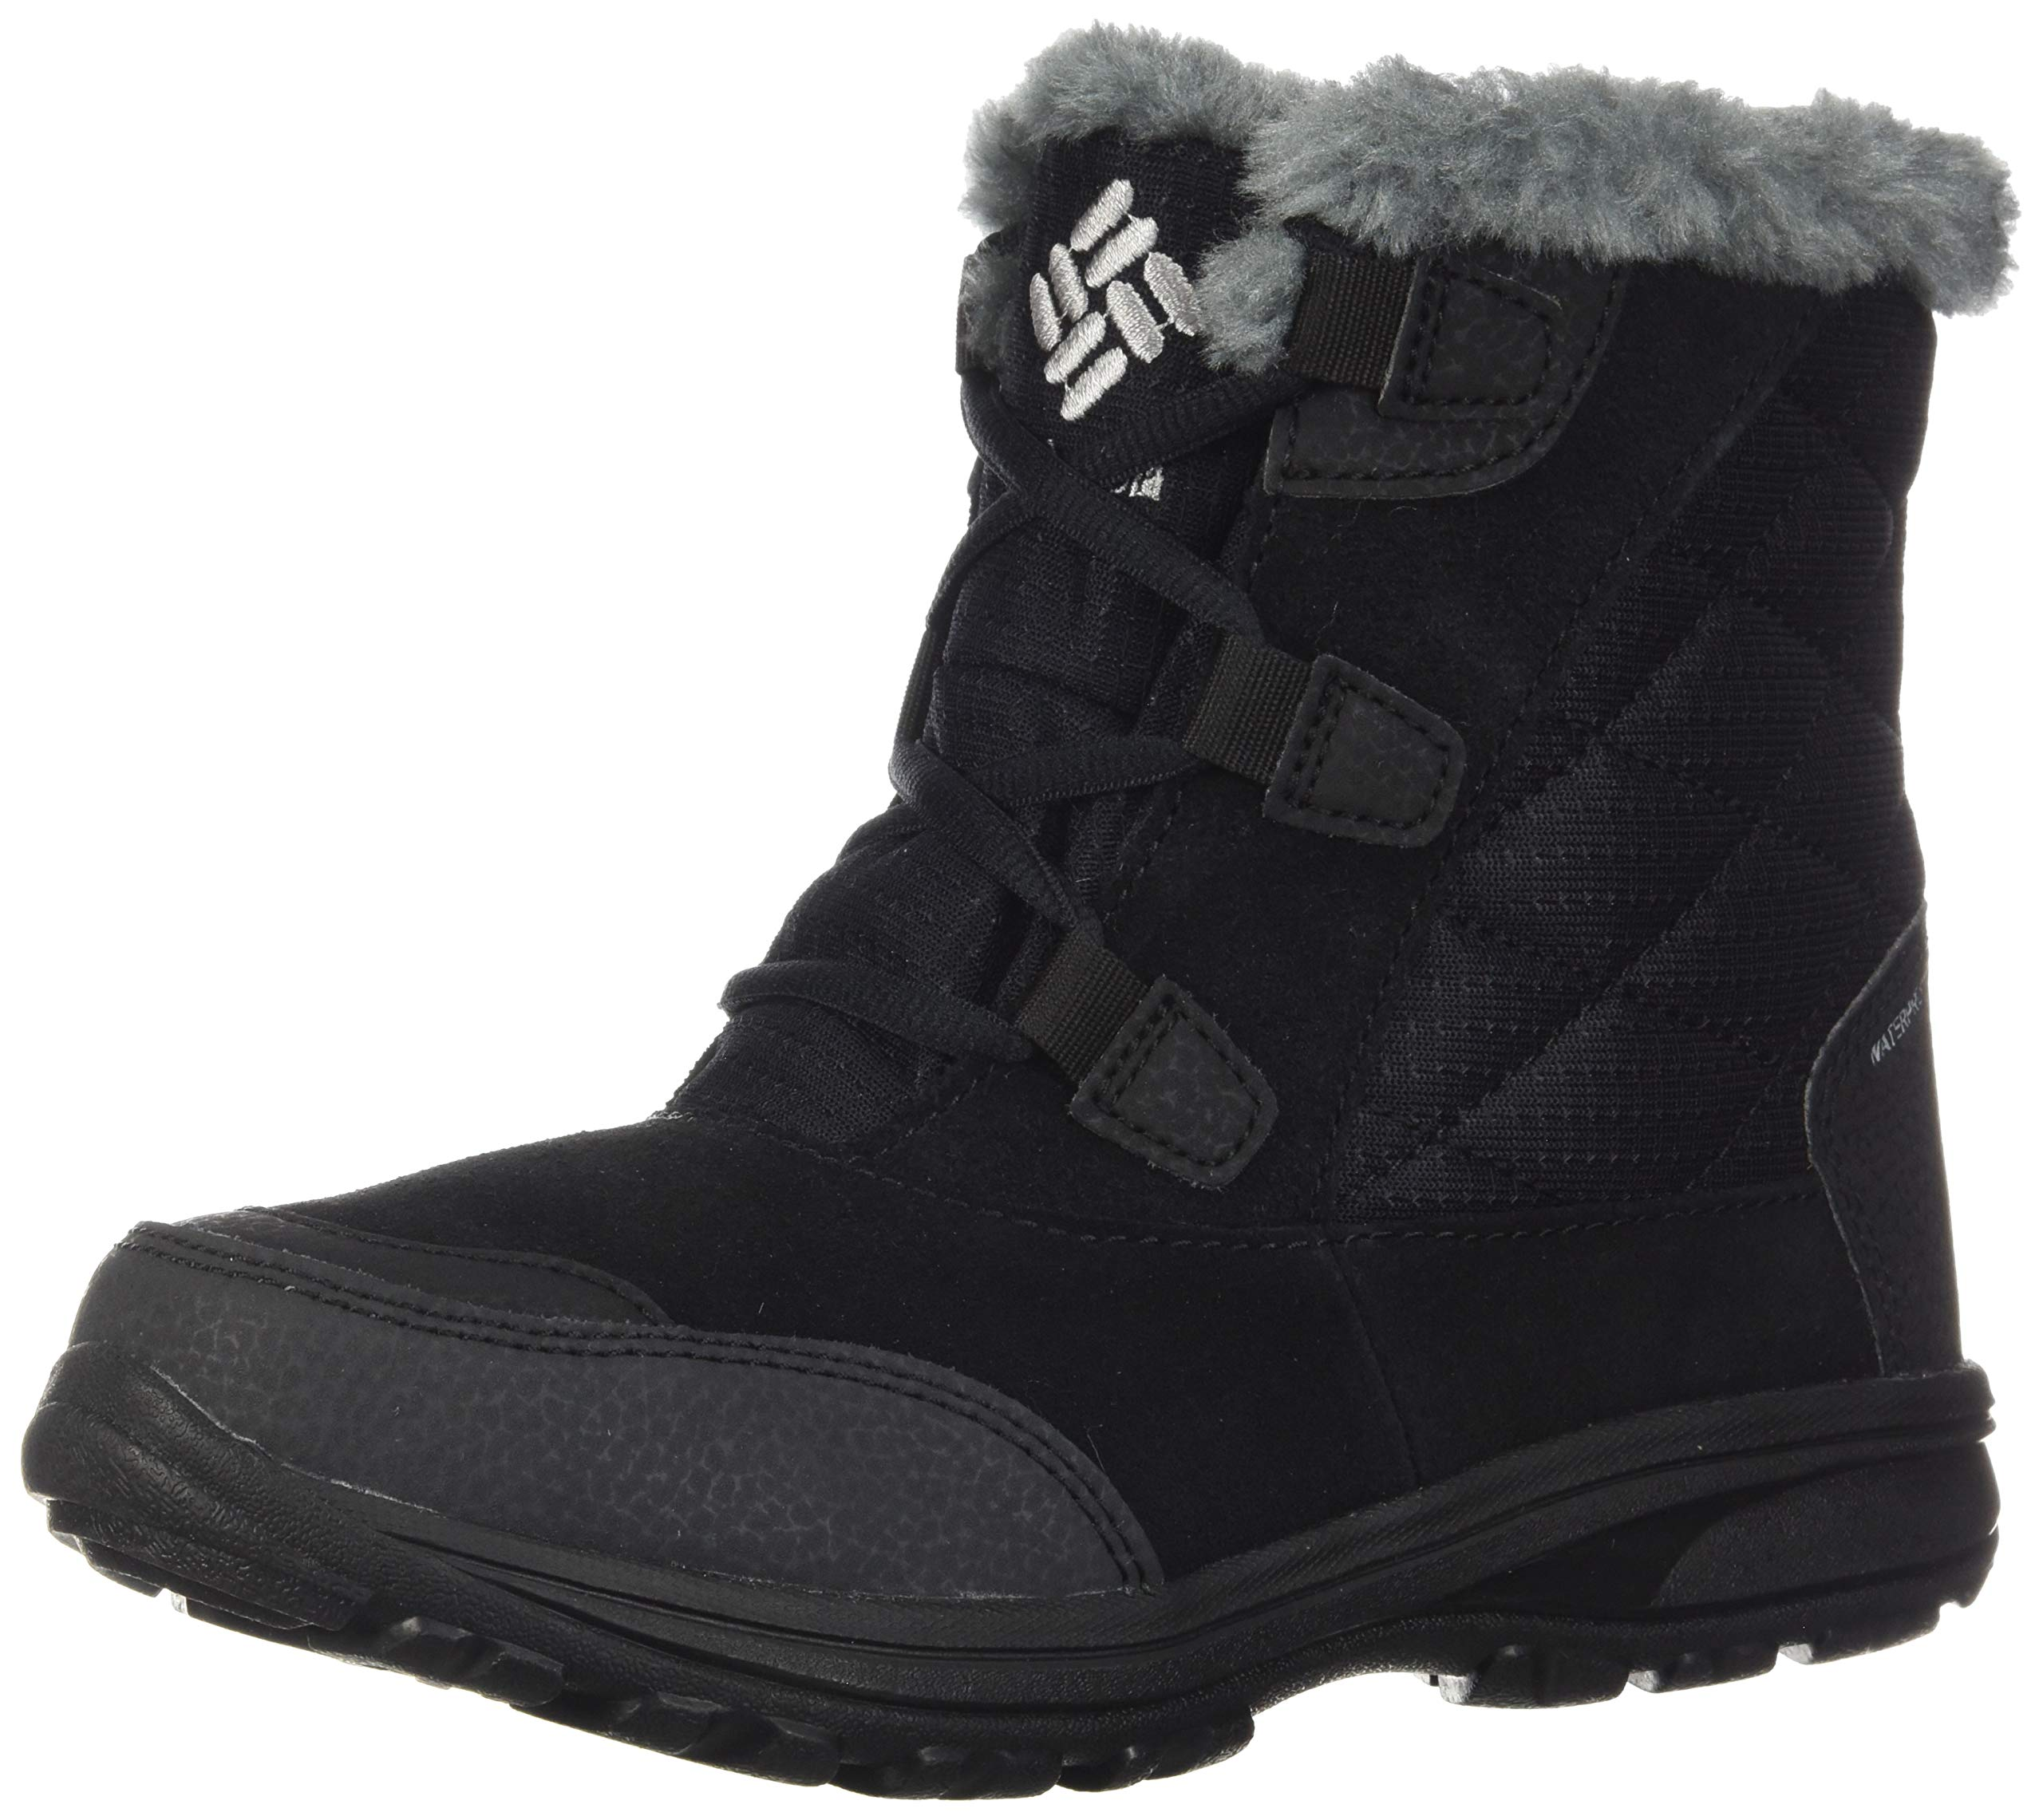 Columbia Women's ICE Maiden Shorty Snow Boot, Black, Grey, 12 Regular US by Columbia